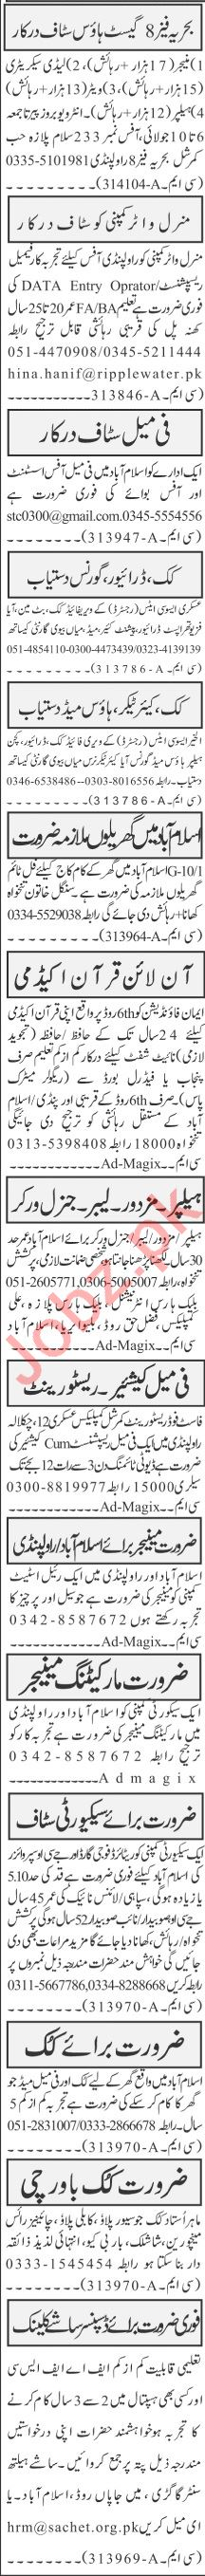 Jang Sunday Classified Ads 5th July 2020 for General Staff